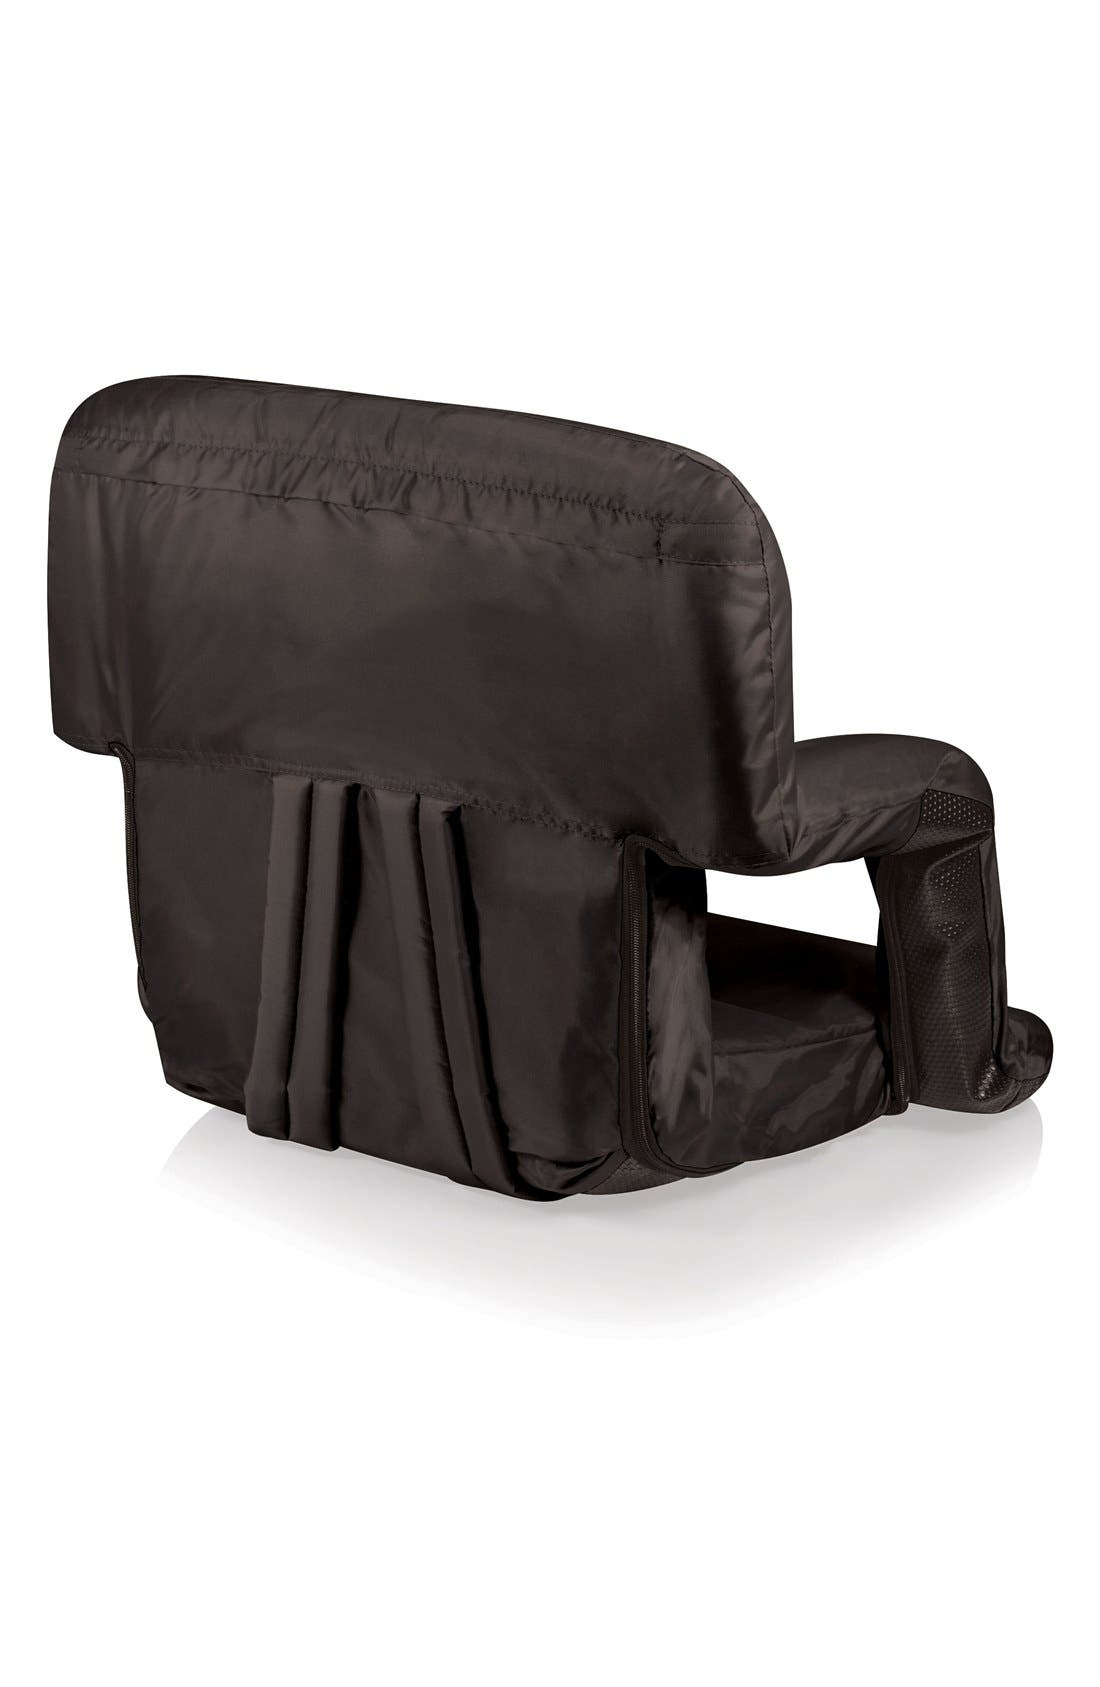 Alternate Image 2  - Picnic Time 'VenturaSeat' Portable Fold-Up Chair